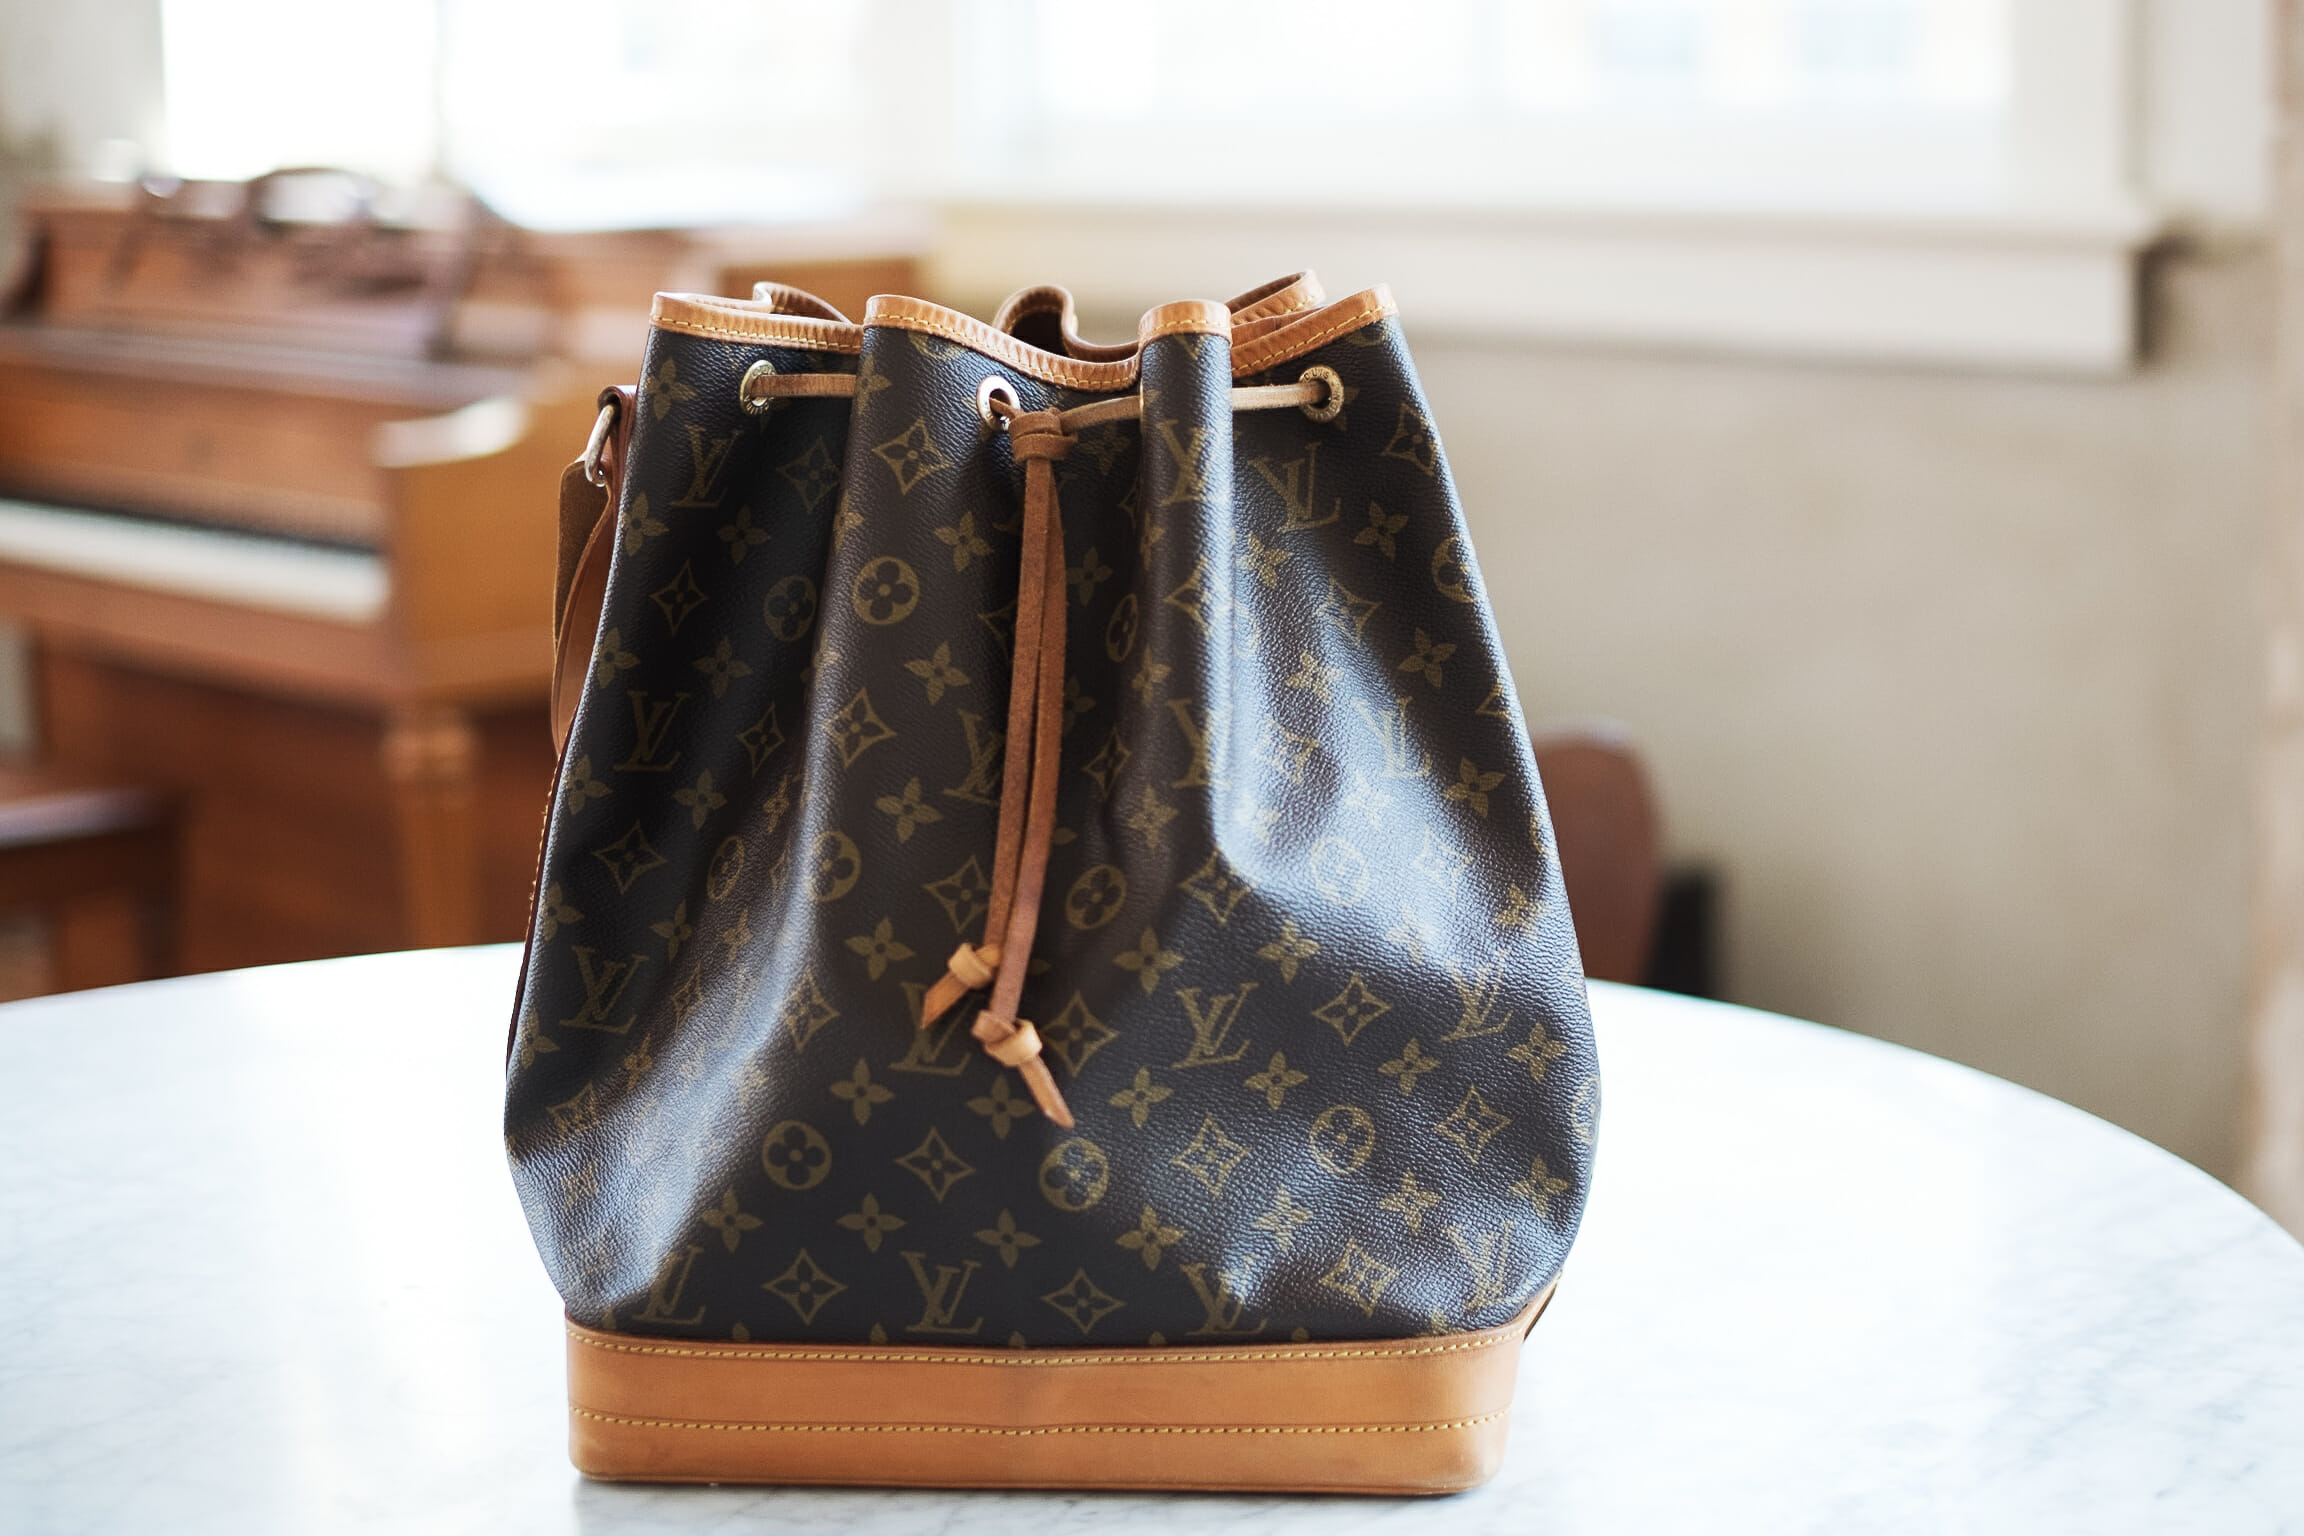 3d1b0299289 Speaking as a relative luxury newbie, I've become quite addicted to Louis  Vuitton bags and accessories this past year. I've already shared a glimpse  of my ...